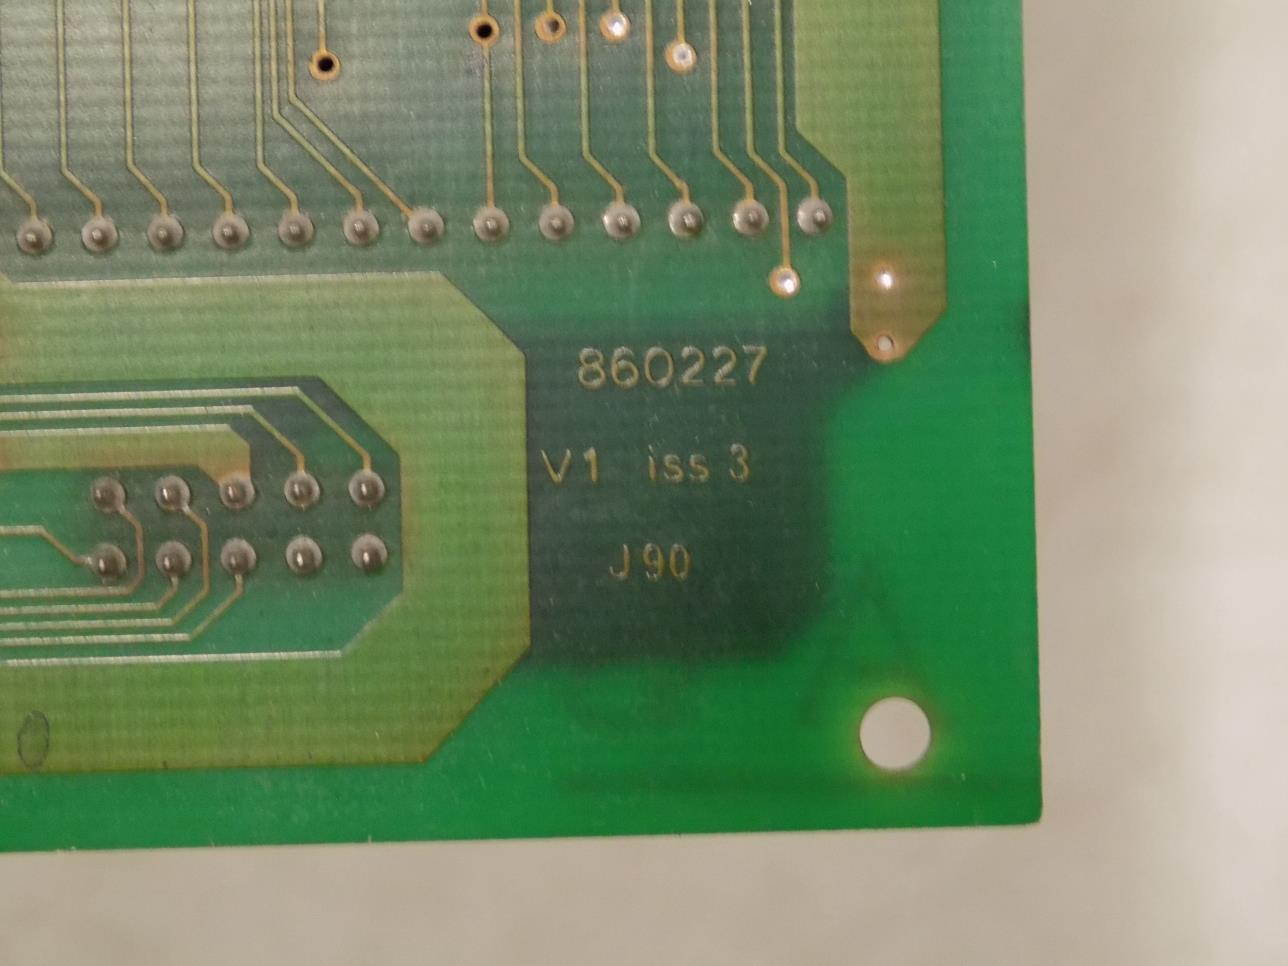 Circuit Board Ze 01 94v 0 9315 Sc88t V1 Issue 3 Ebay Enclosure Electronics Components Printed Boards